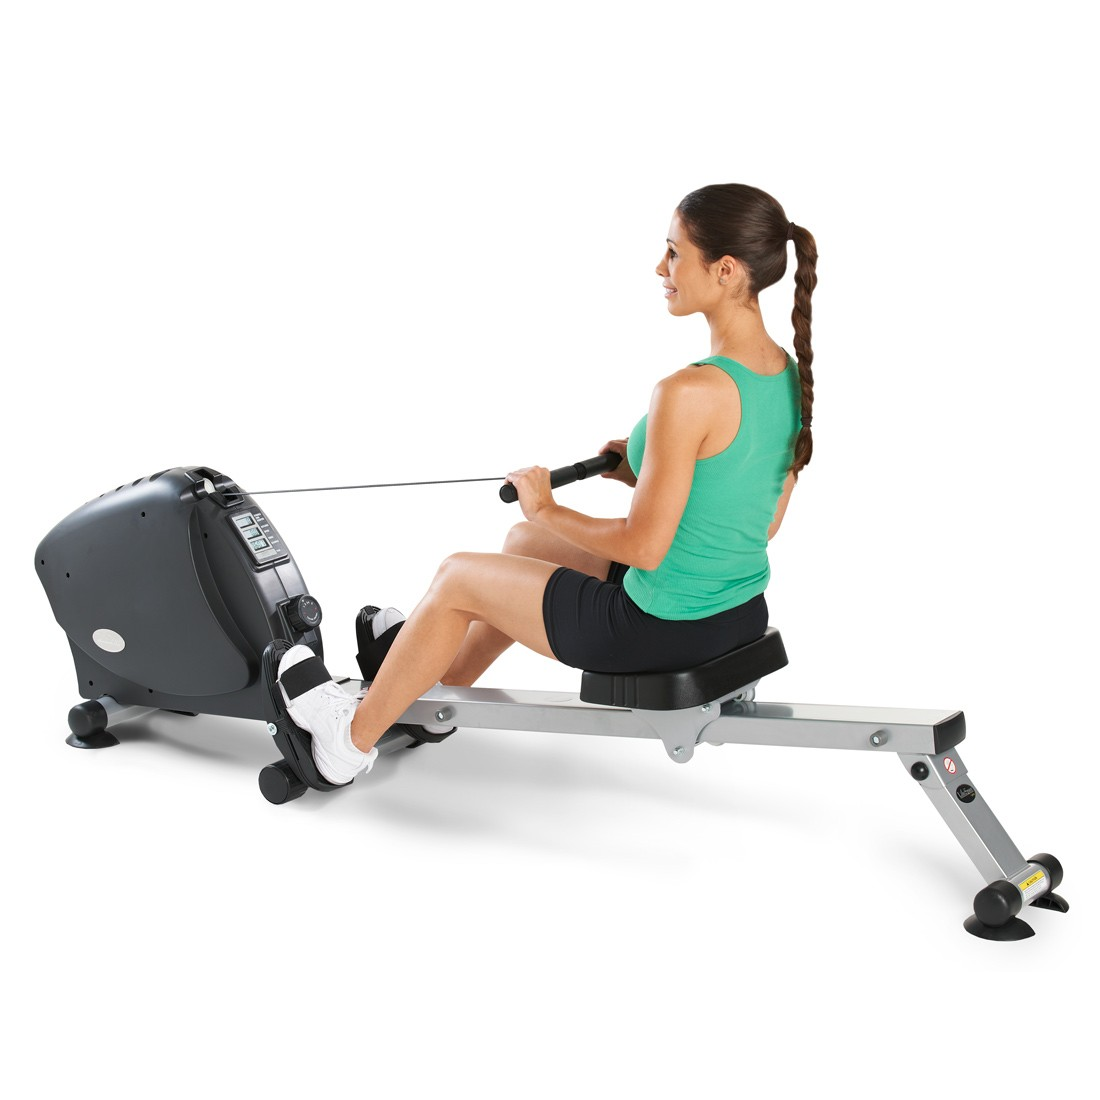 Which fitness equipment is better for home use